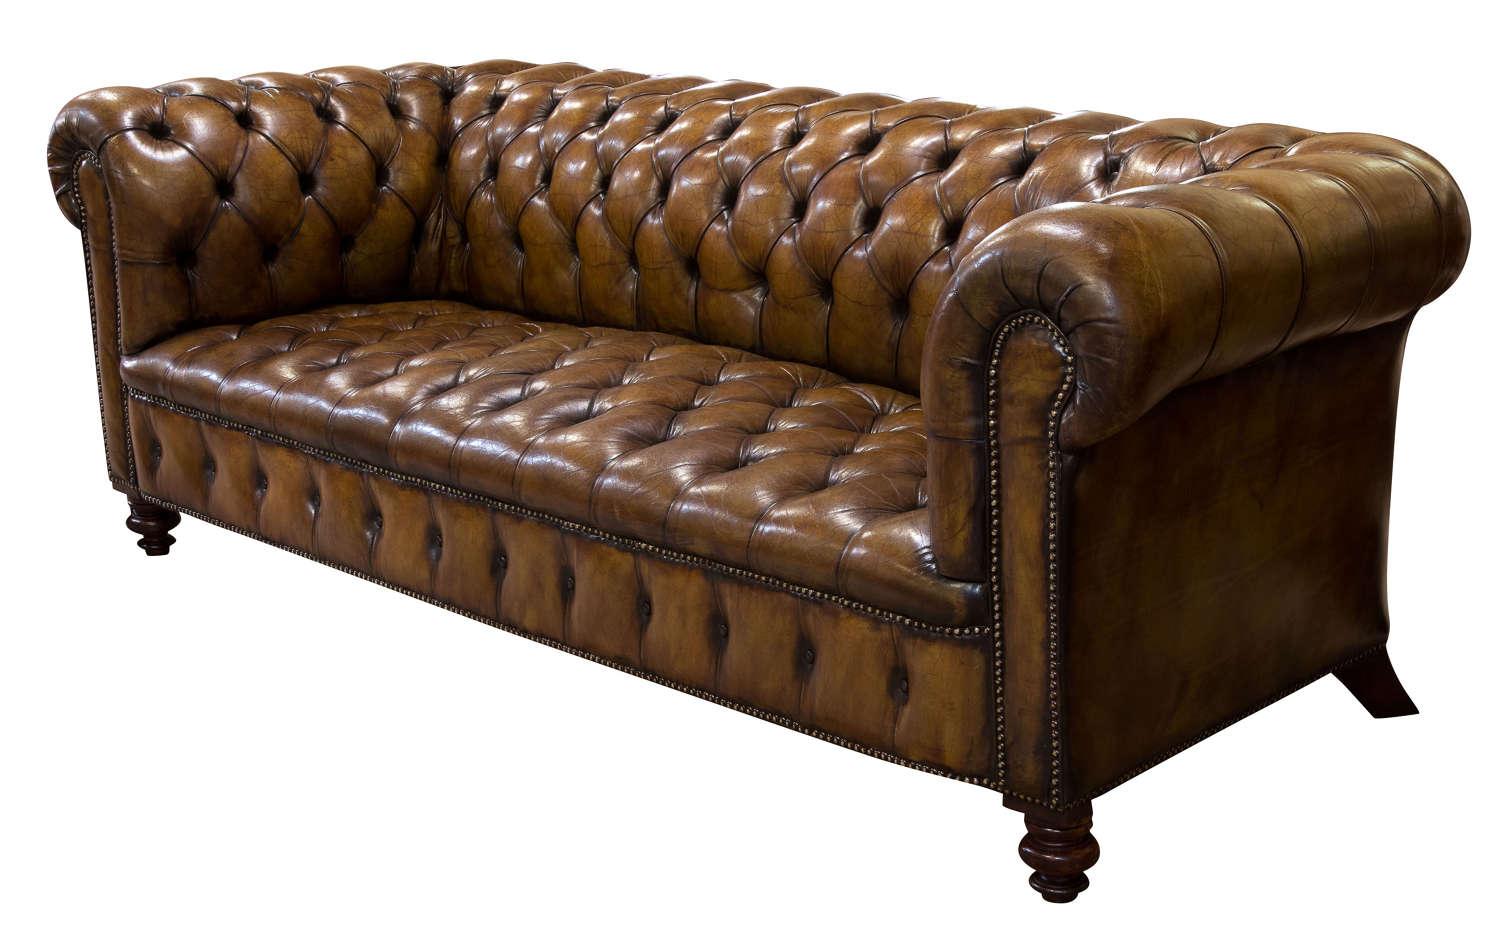 Vintage 3 seater chesterfield